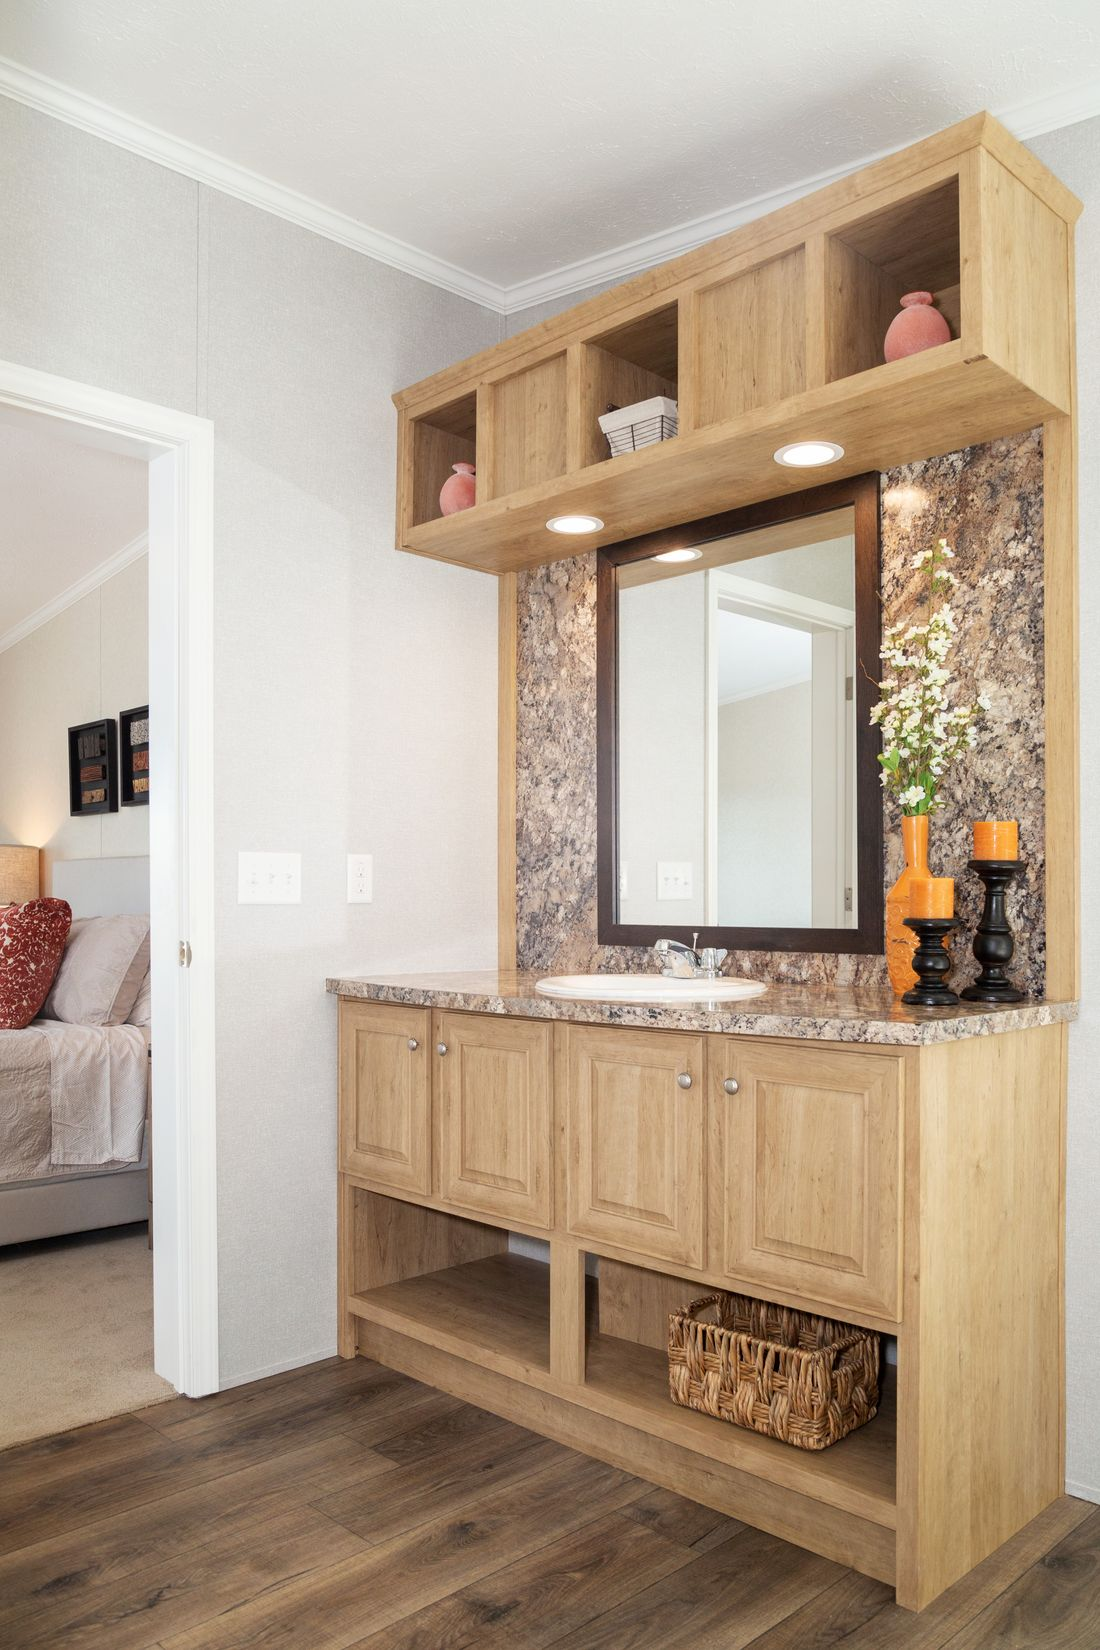 The SHEER ELM Master Bathroom. This Manufactured Mobile Home features 3 bedrooms and 2 baths.